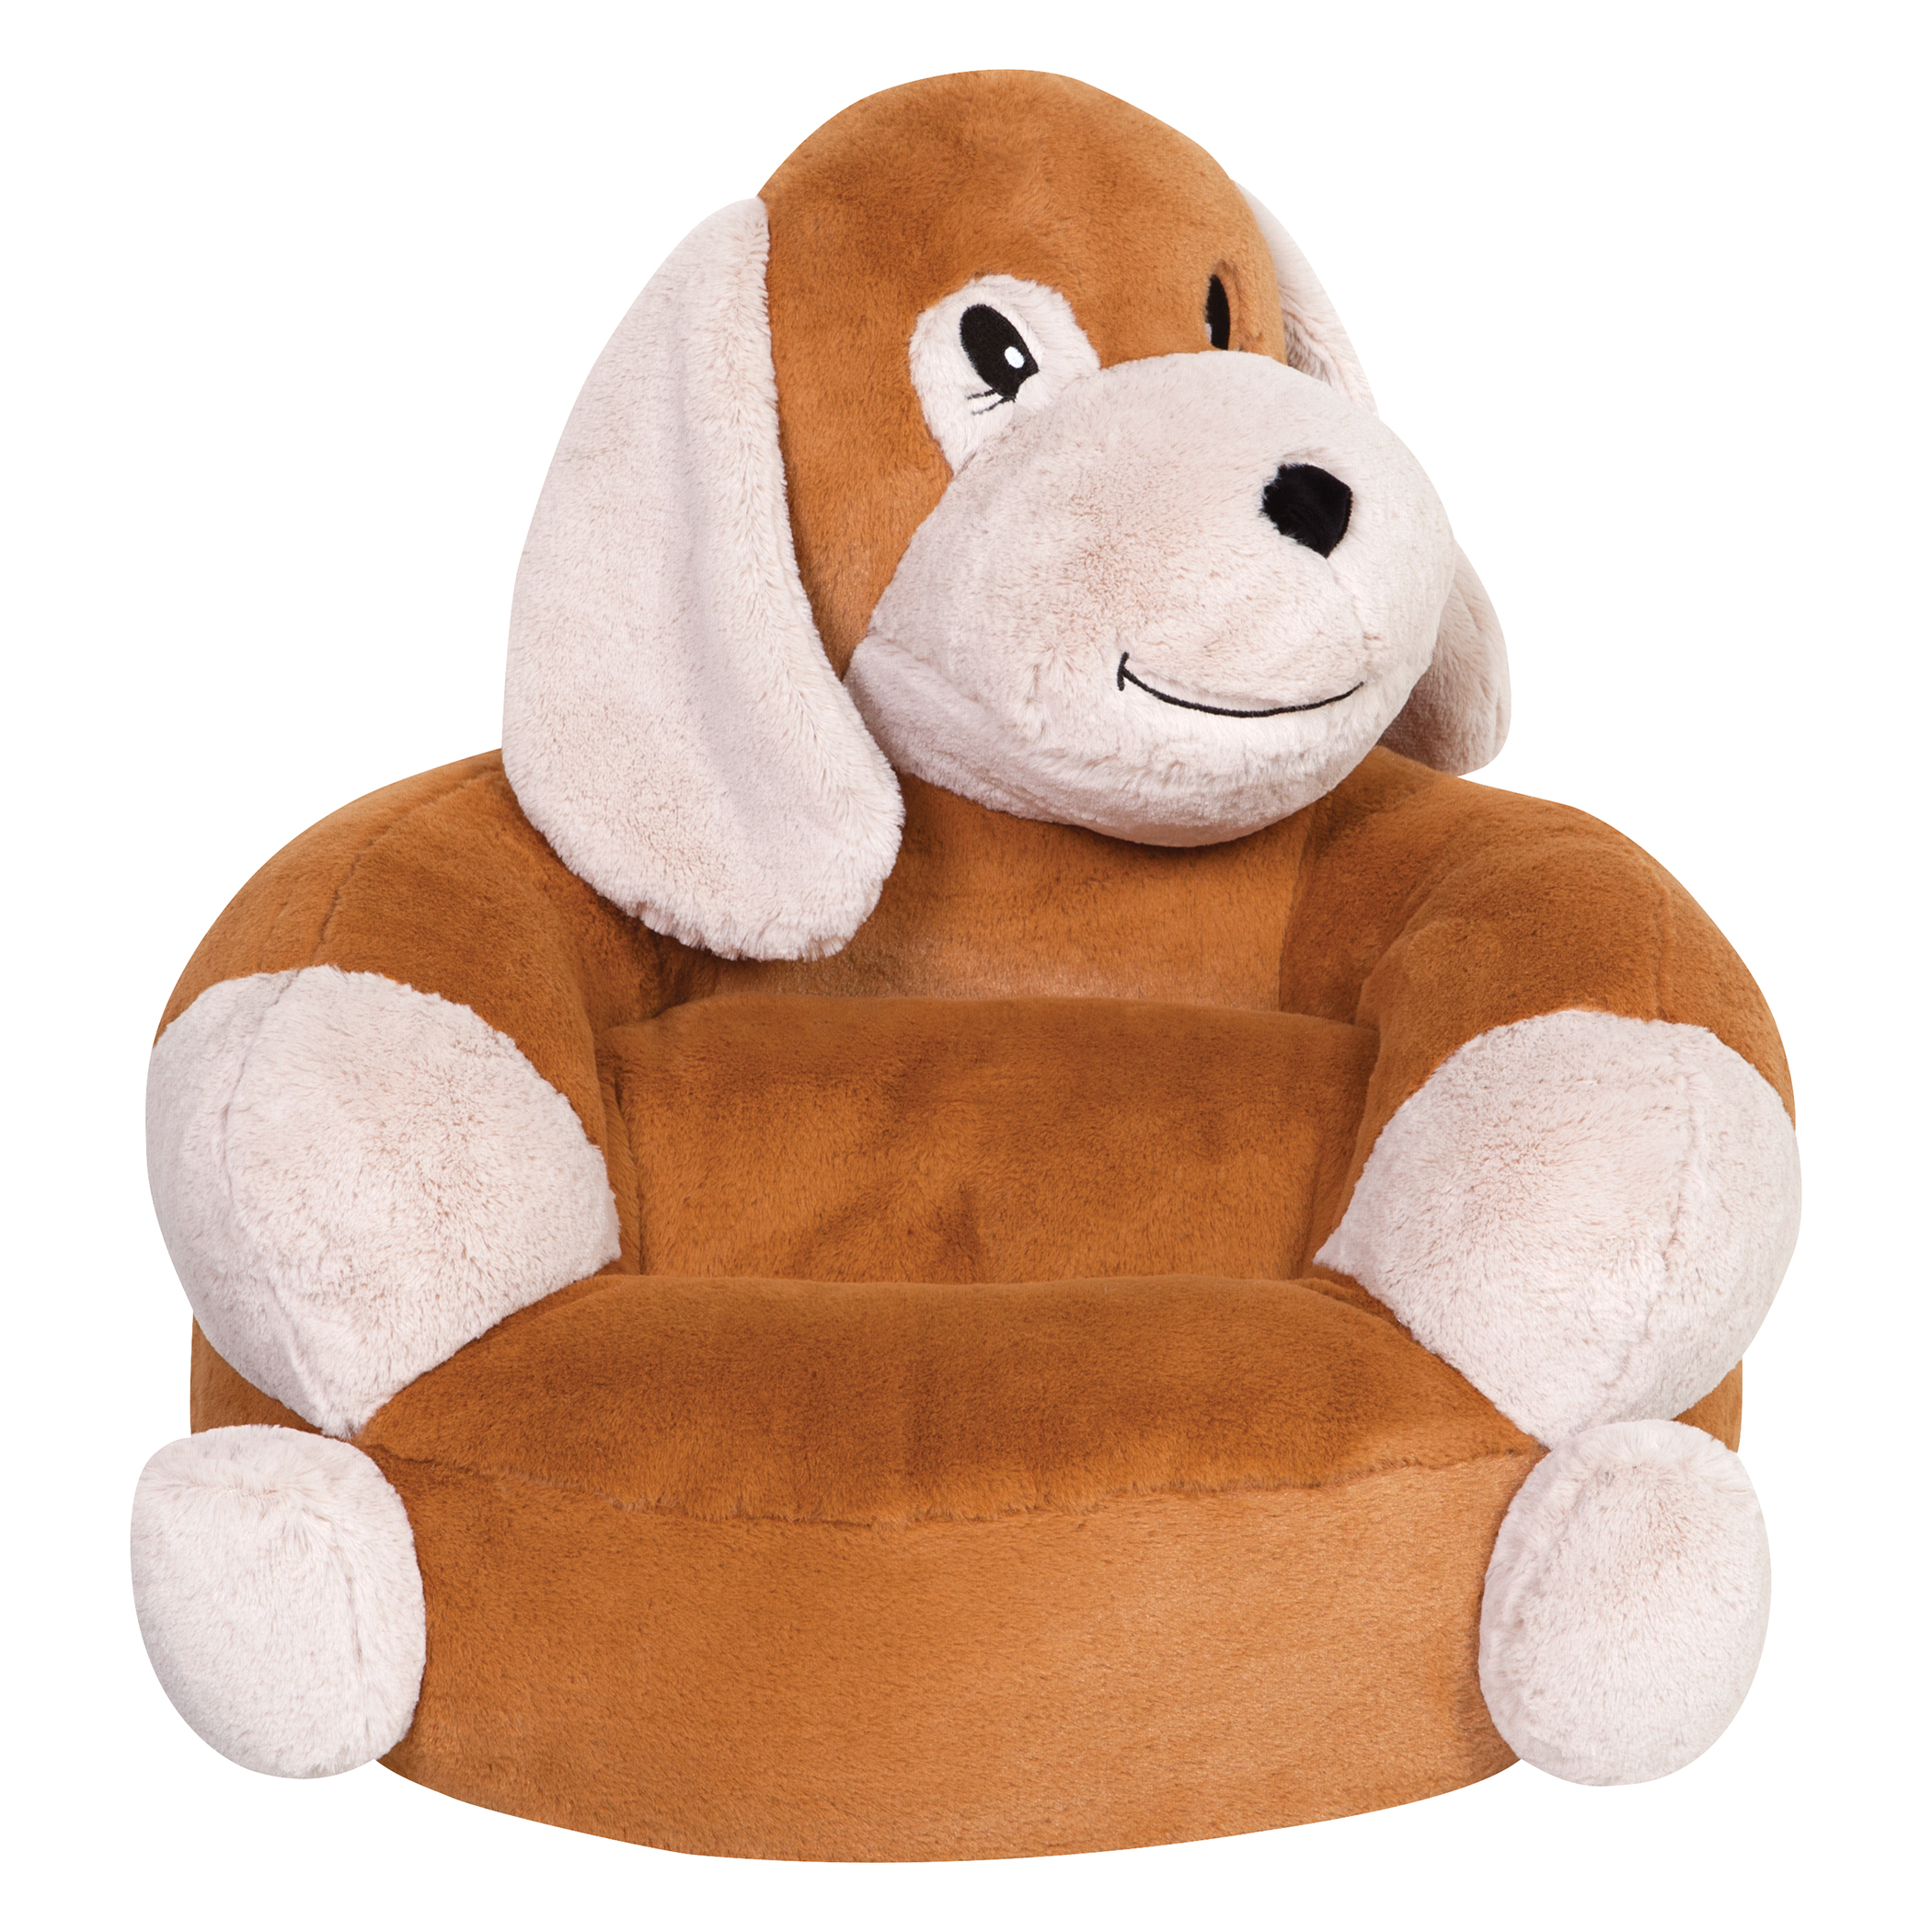 children s stuffed animal chairs baxton studio chair reviews trend lab 39s plush puppy character